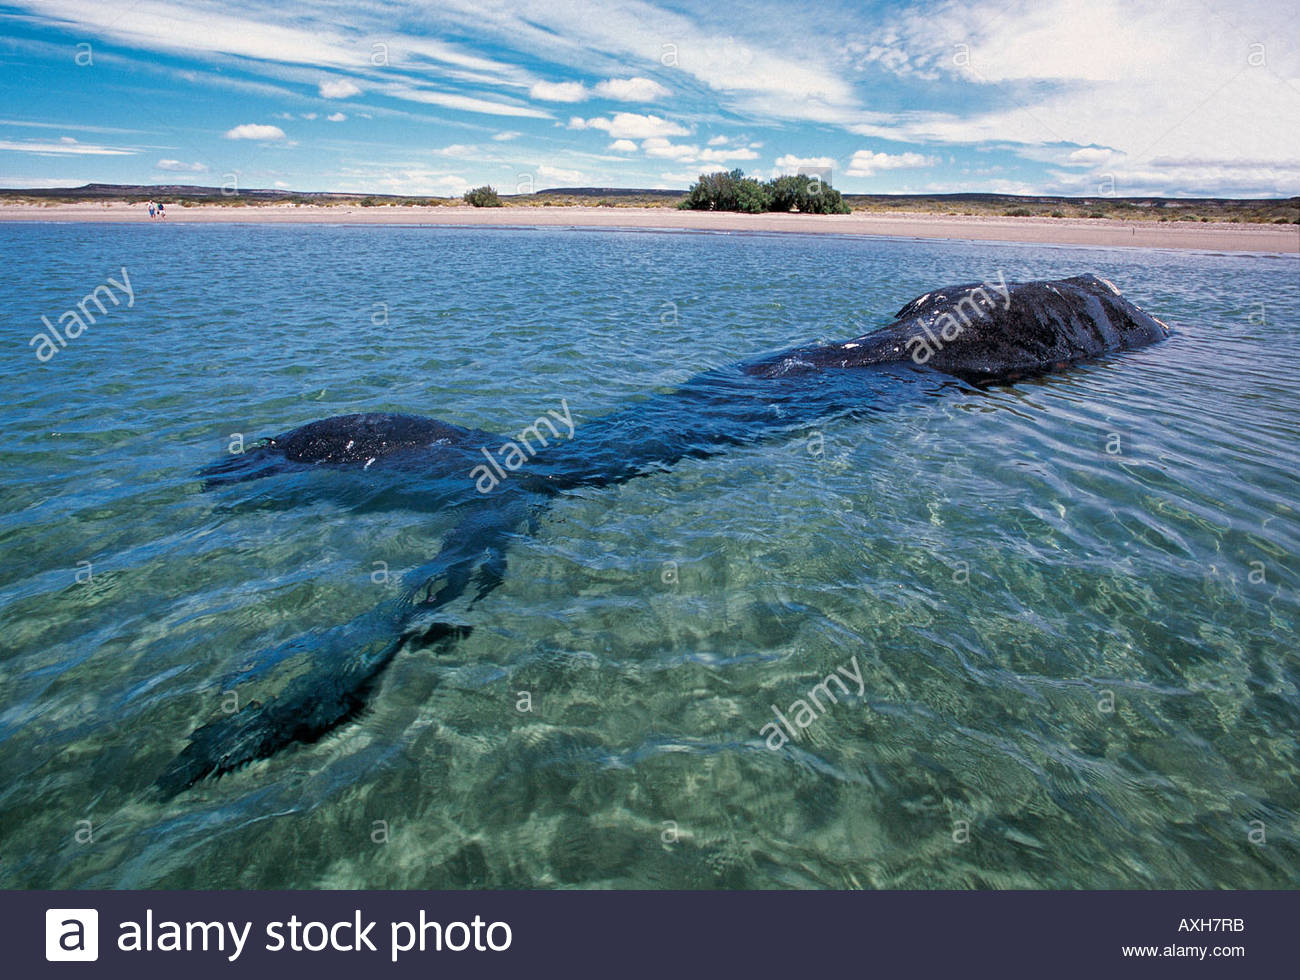 Grounded southern right whale, Ballena franca, in Nuevo Bay, Patagonia Argentina. - Stock Image